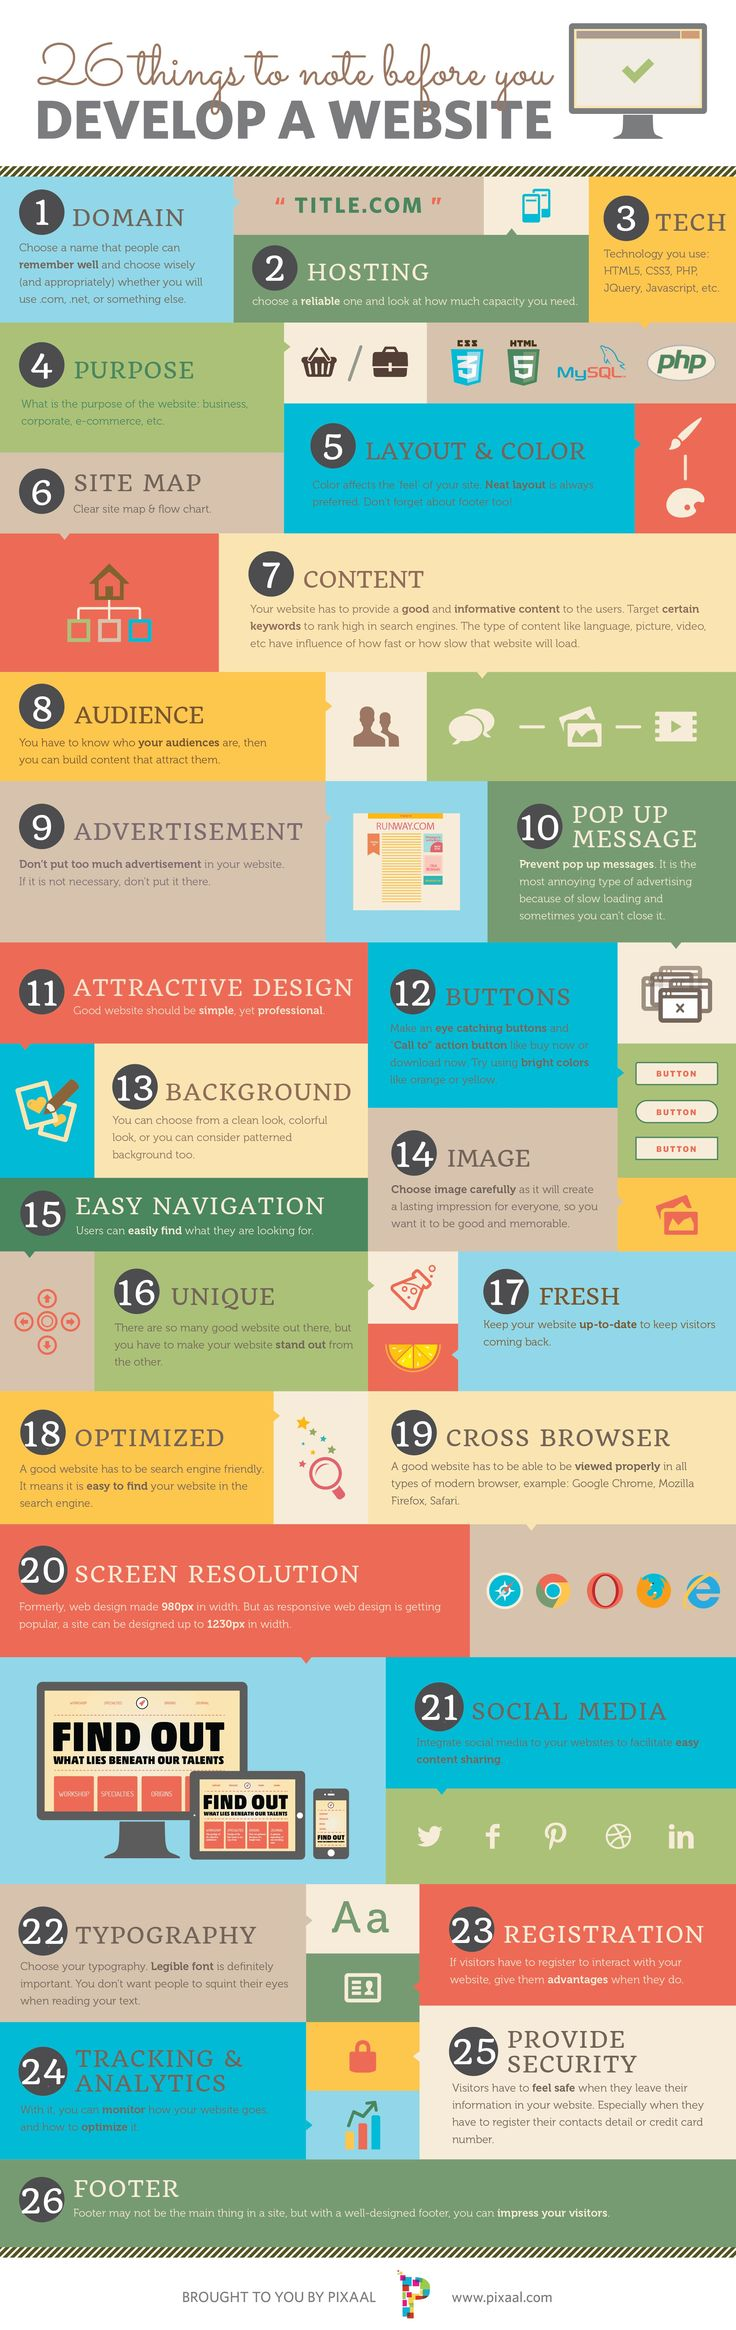 26 Things to Note Before You Develop a #Website